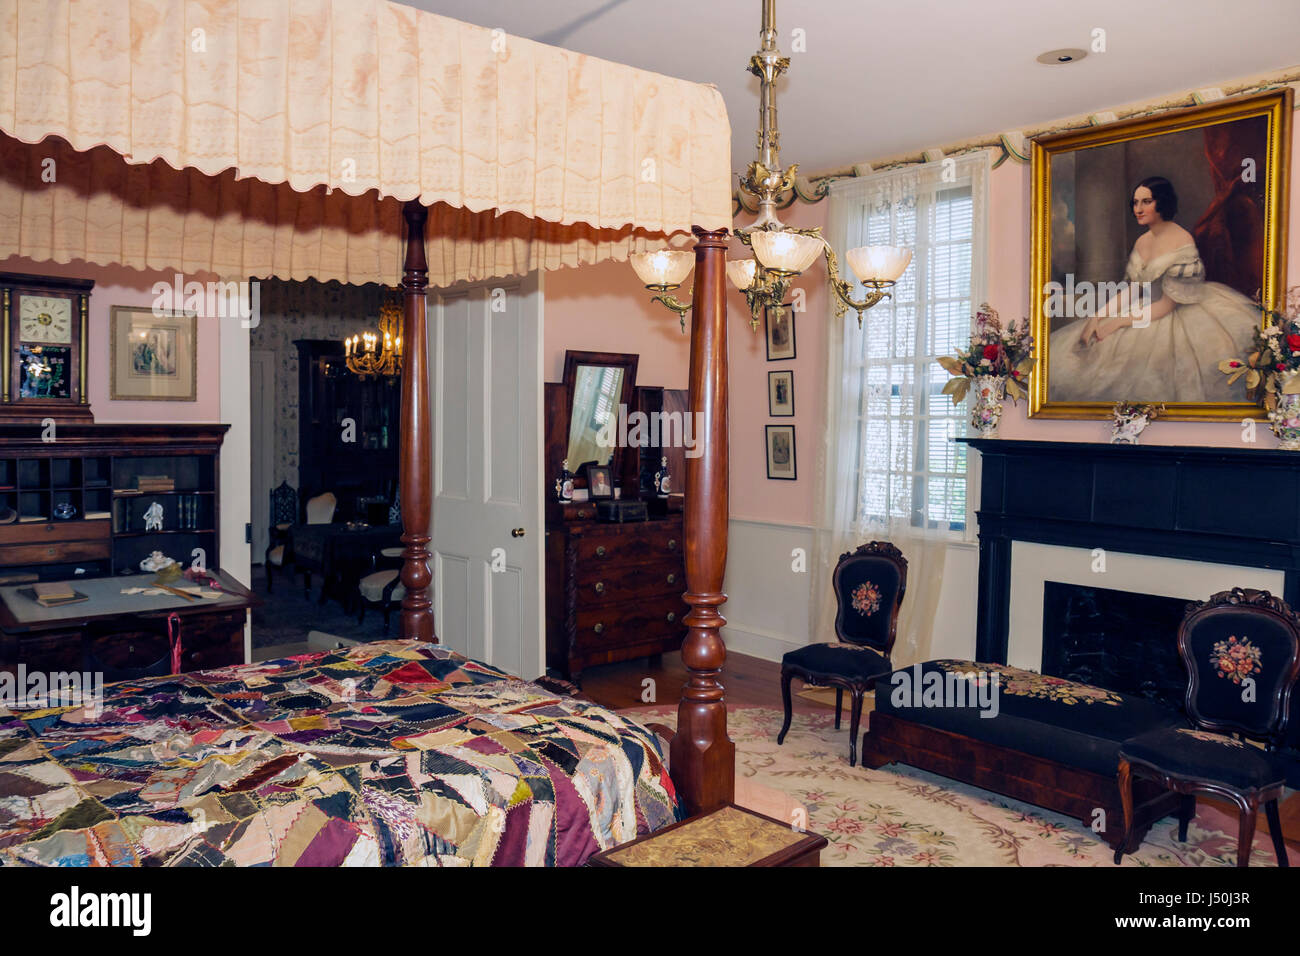 Alabama,Montgomery County,Montgomery,First White House of the Confederacy,Jefferson Davis,Civil War,bedroom,canopy,painting,interior,antique,furniture Stock Photo